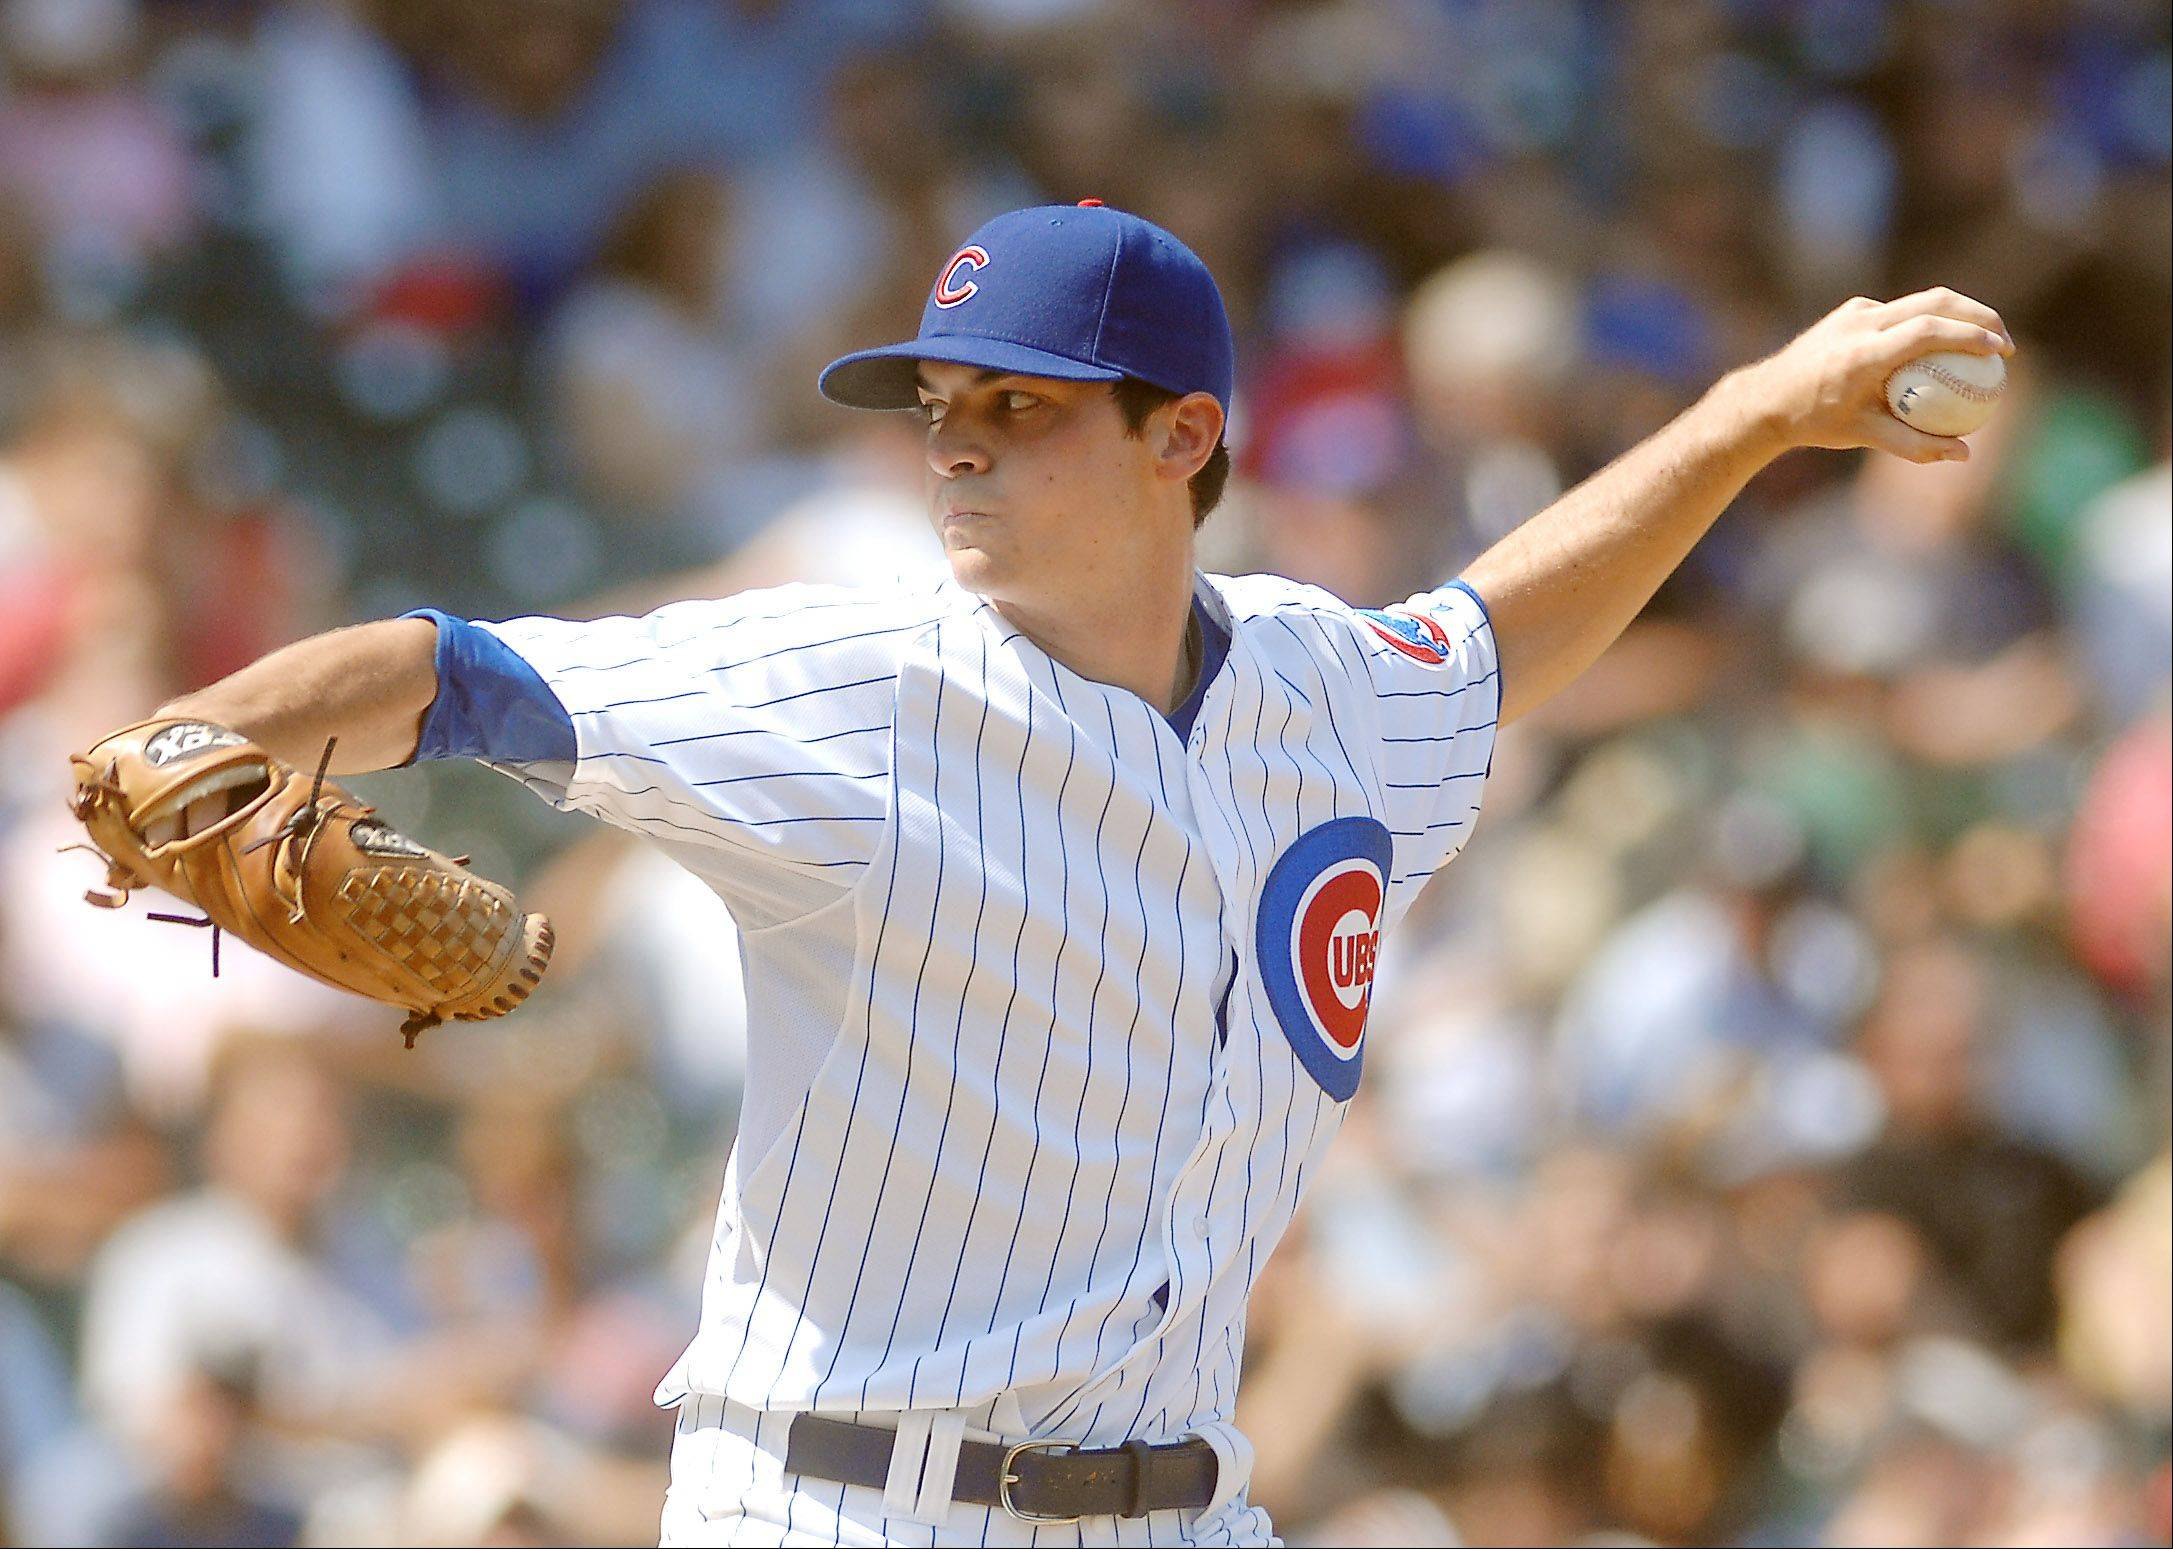 Chicago Cubs starting pitcher Brooks Raley delivers a pitch.